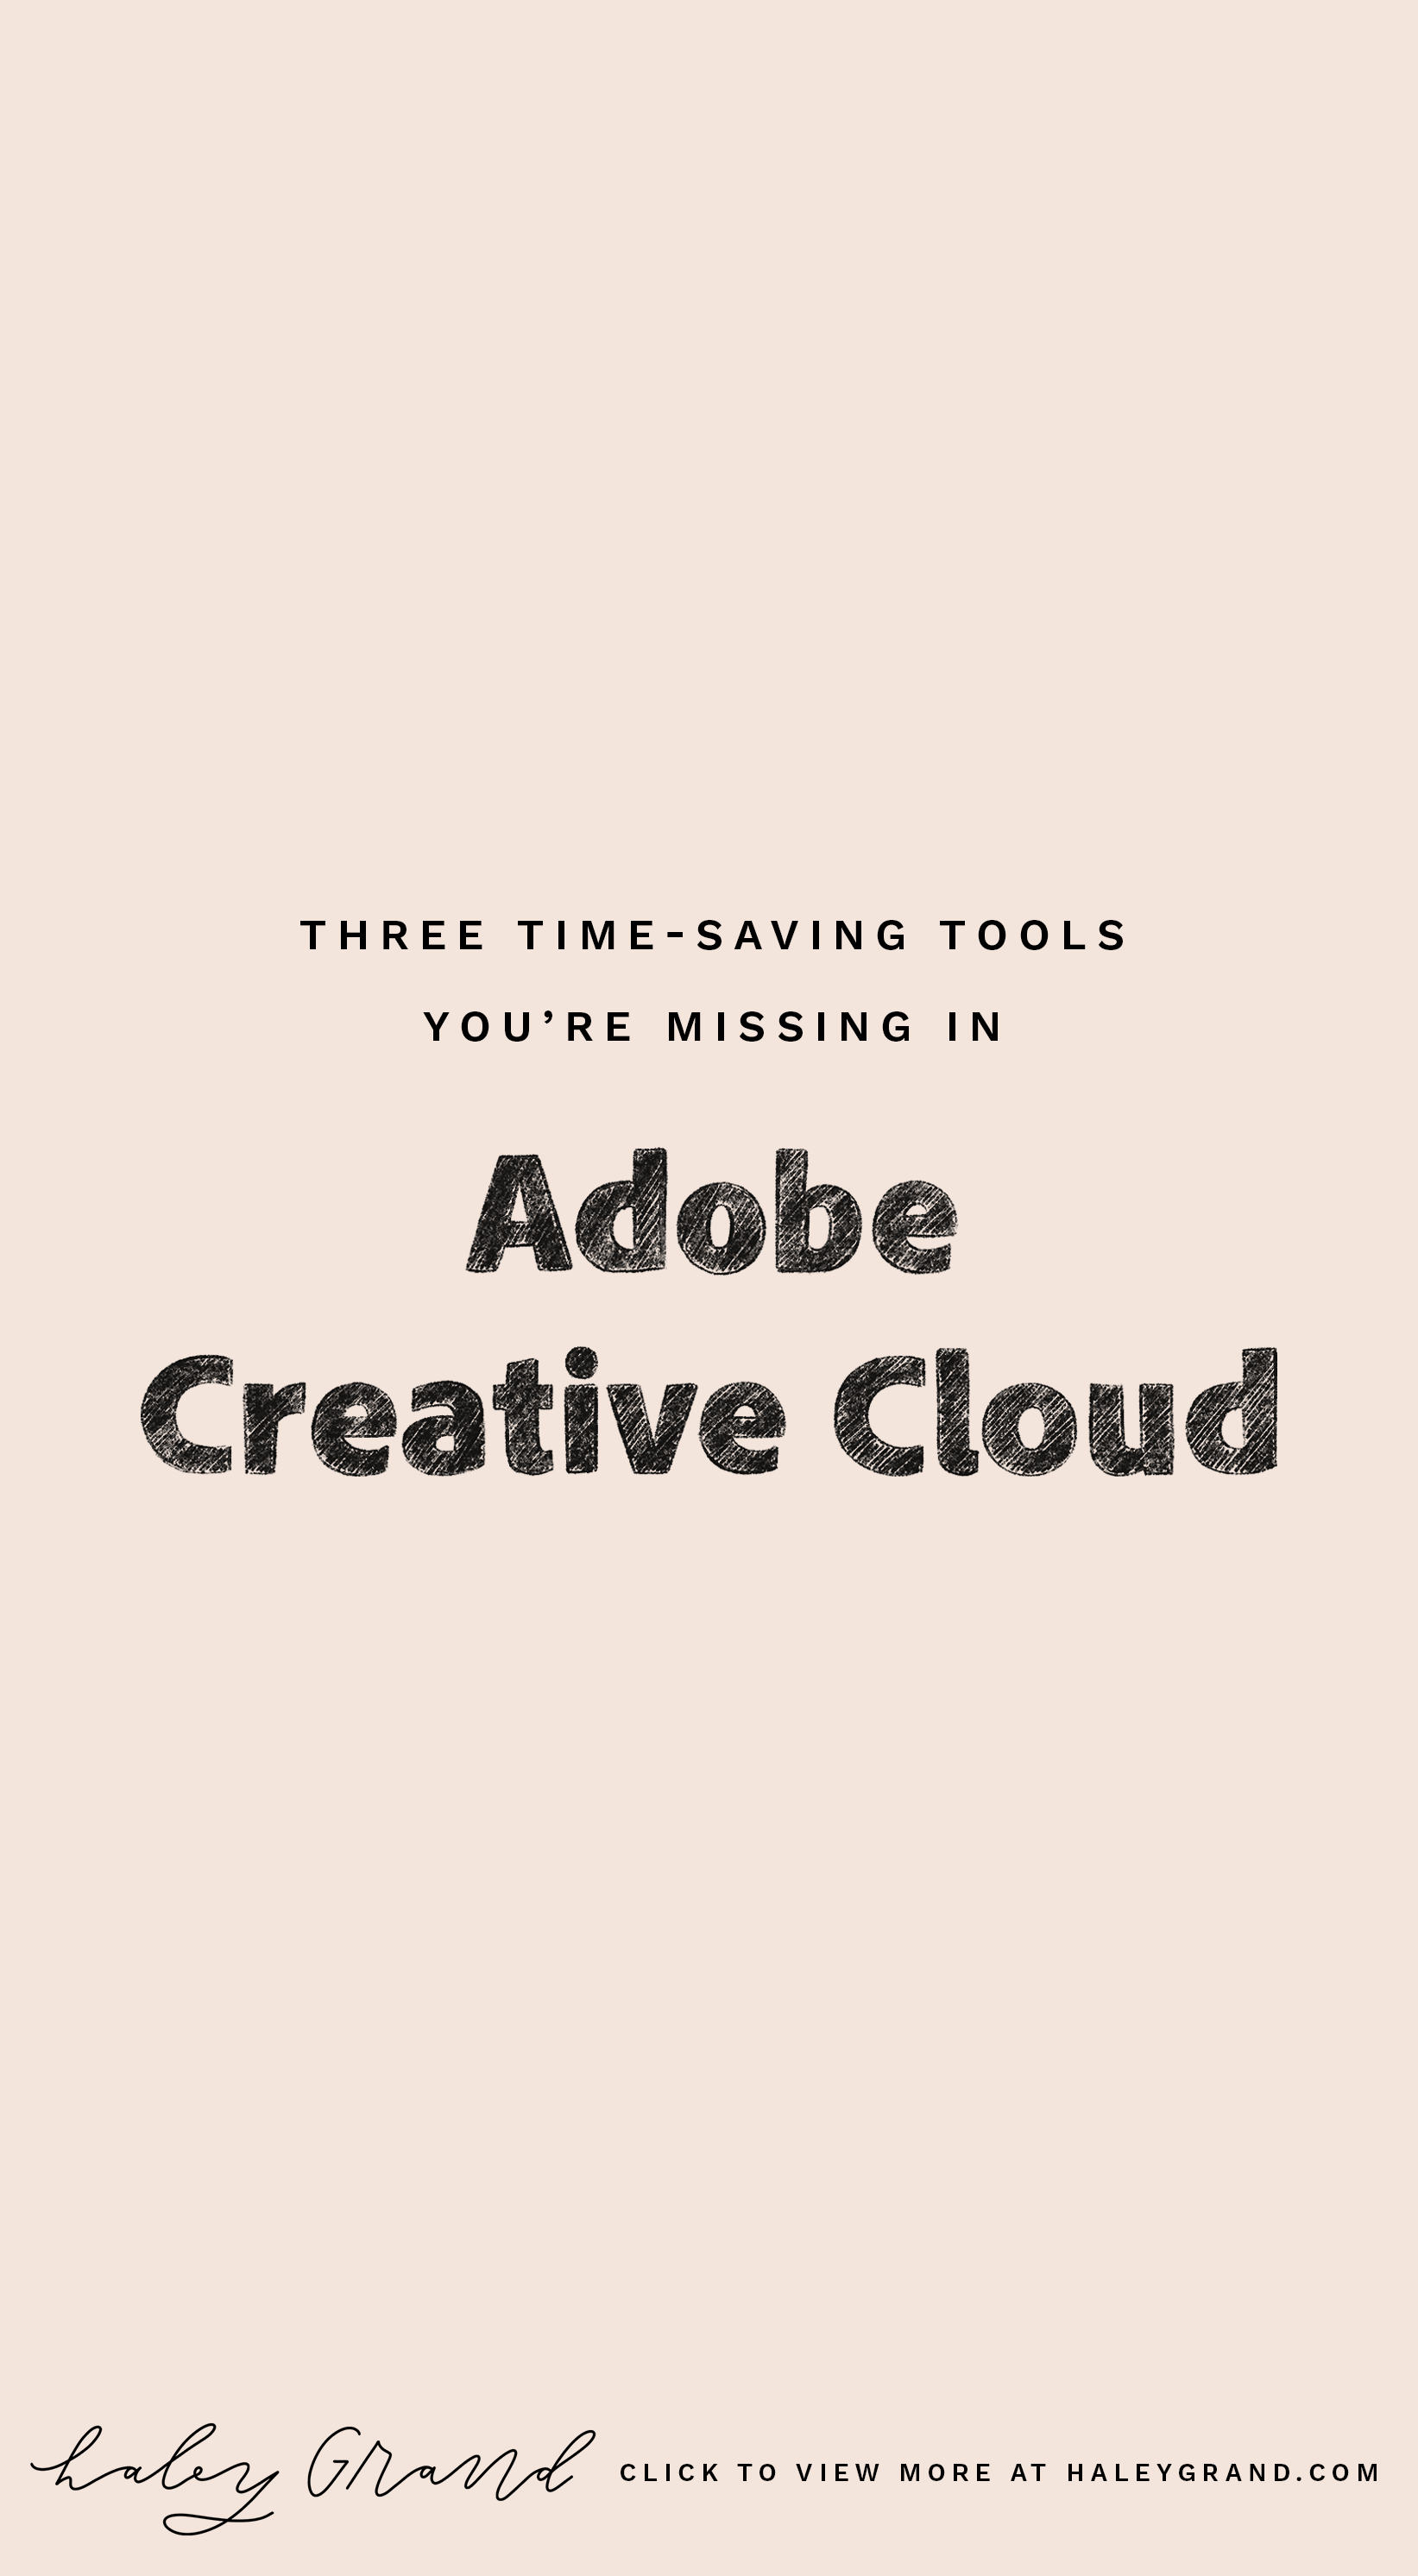 Adobe-Creative-Cloud-Tools-Save-Time.png